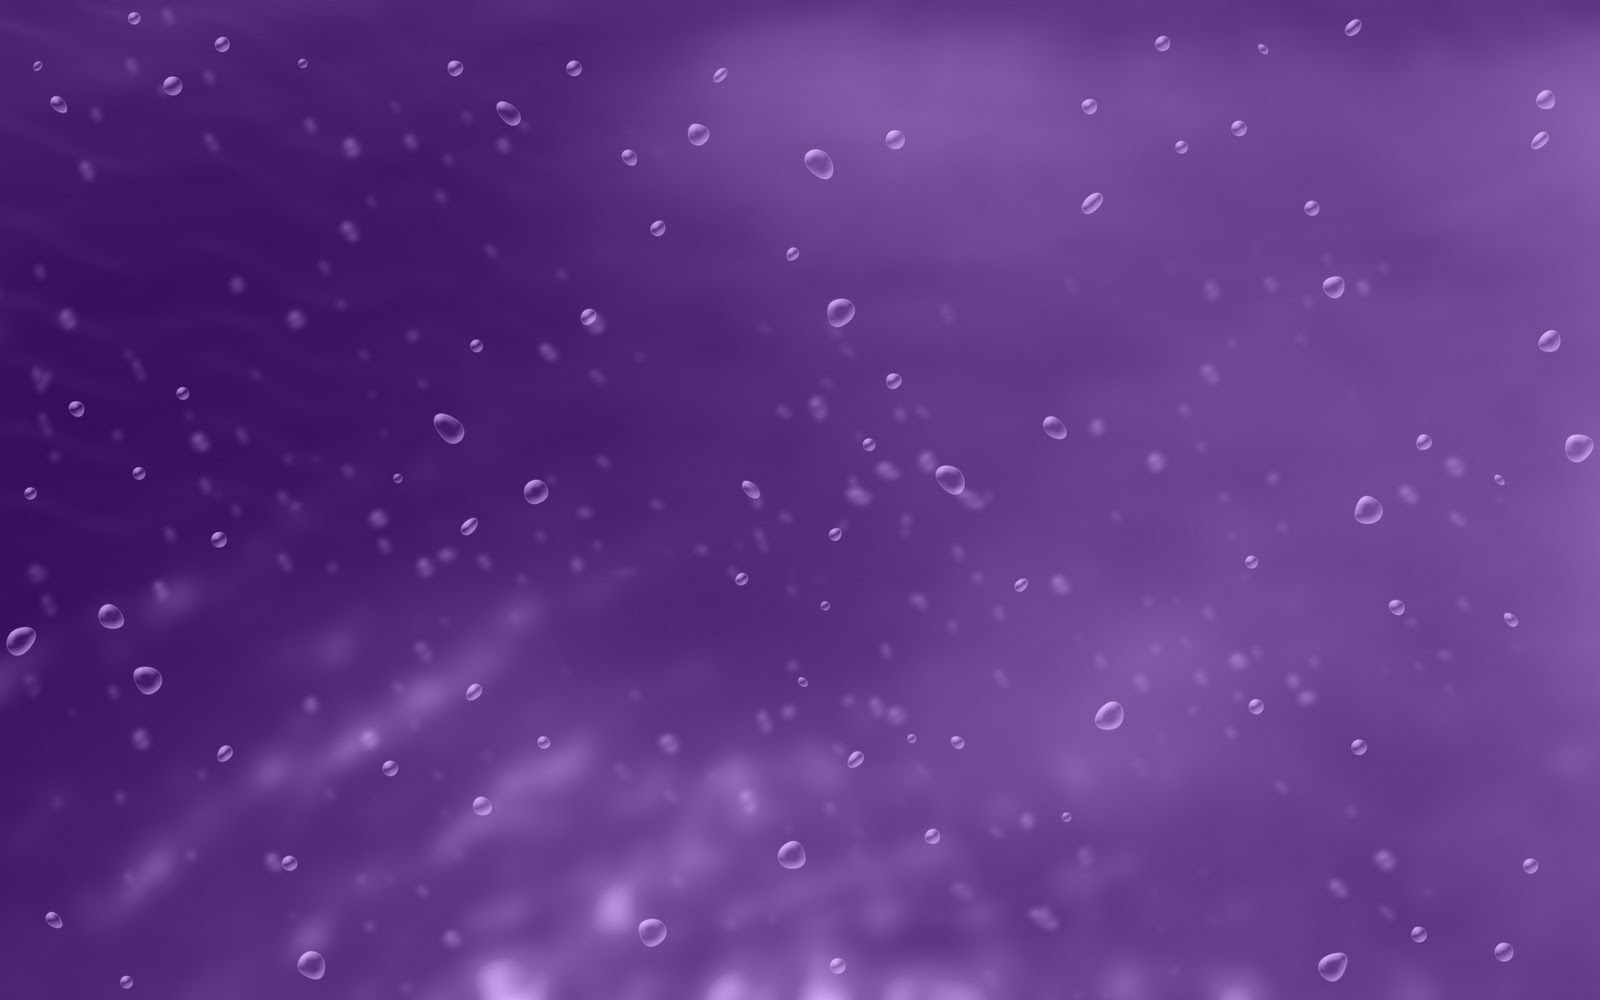 Purple HD Wallpaper Beautiful Purple Backgrounds Purple Wallpapers 1600x1000